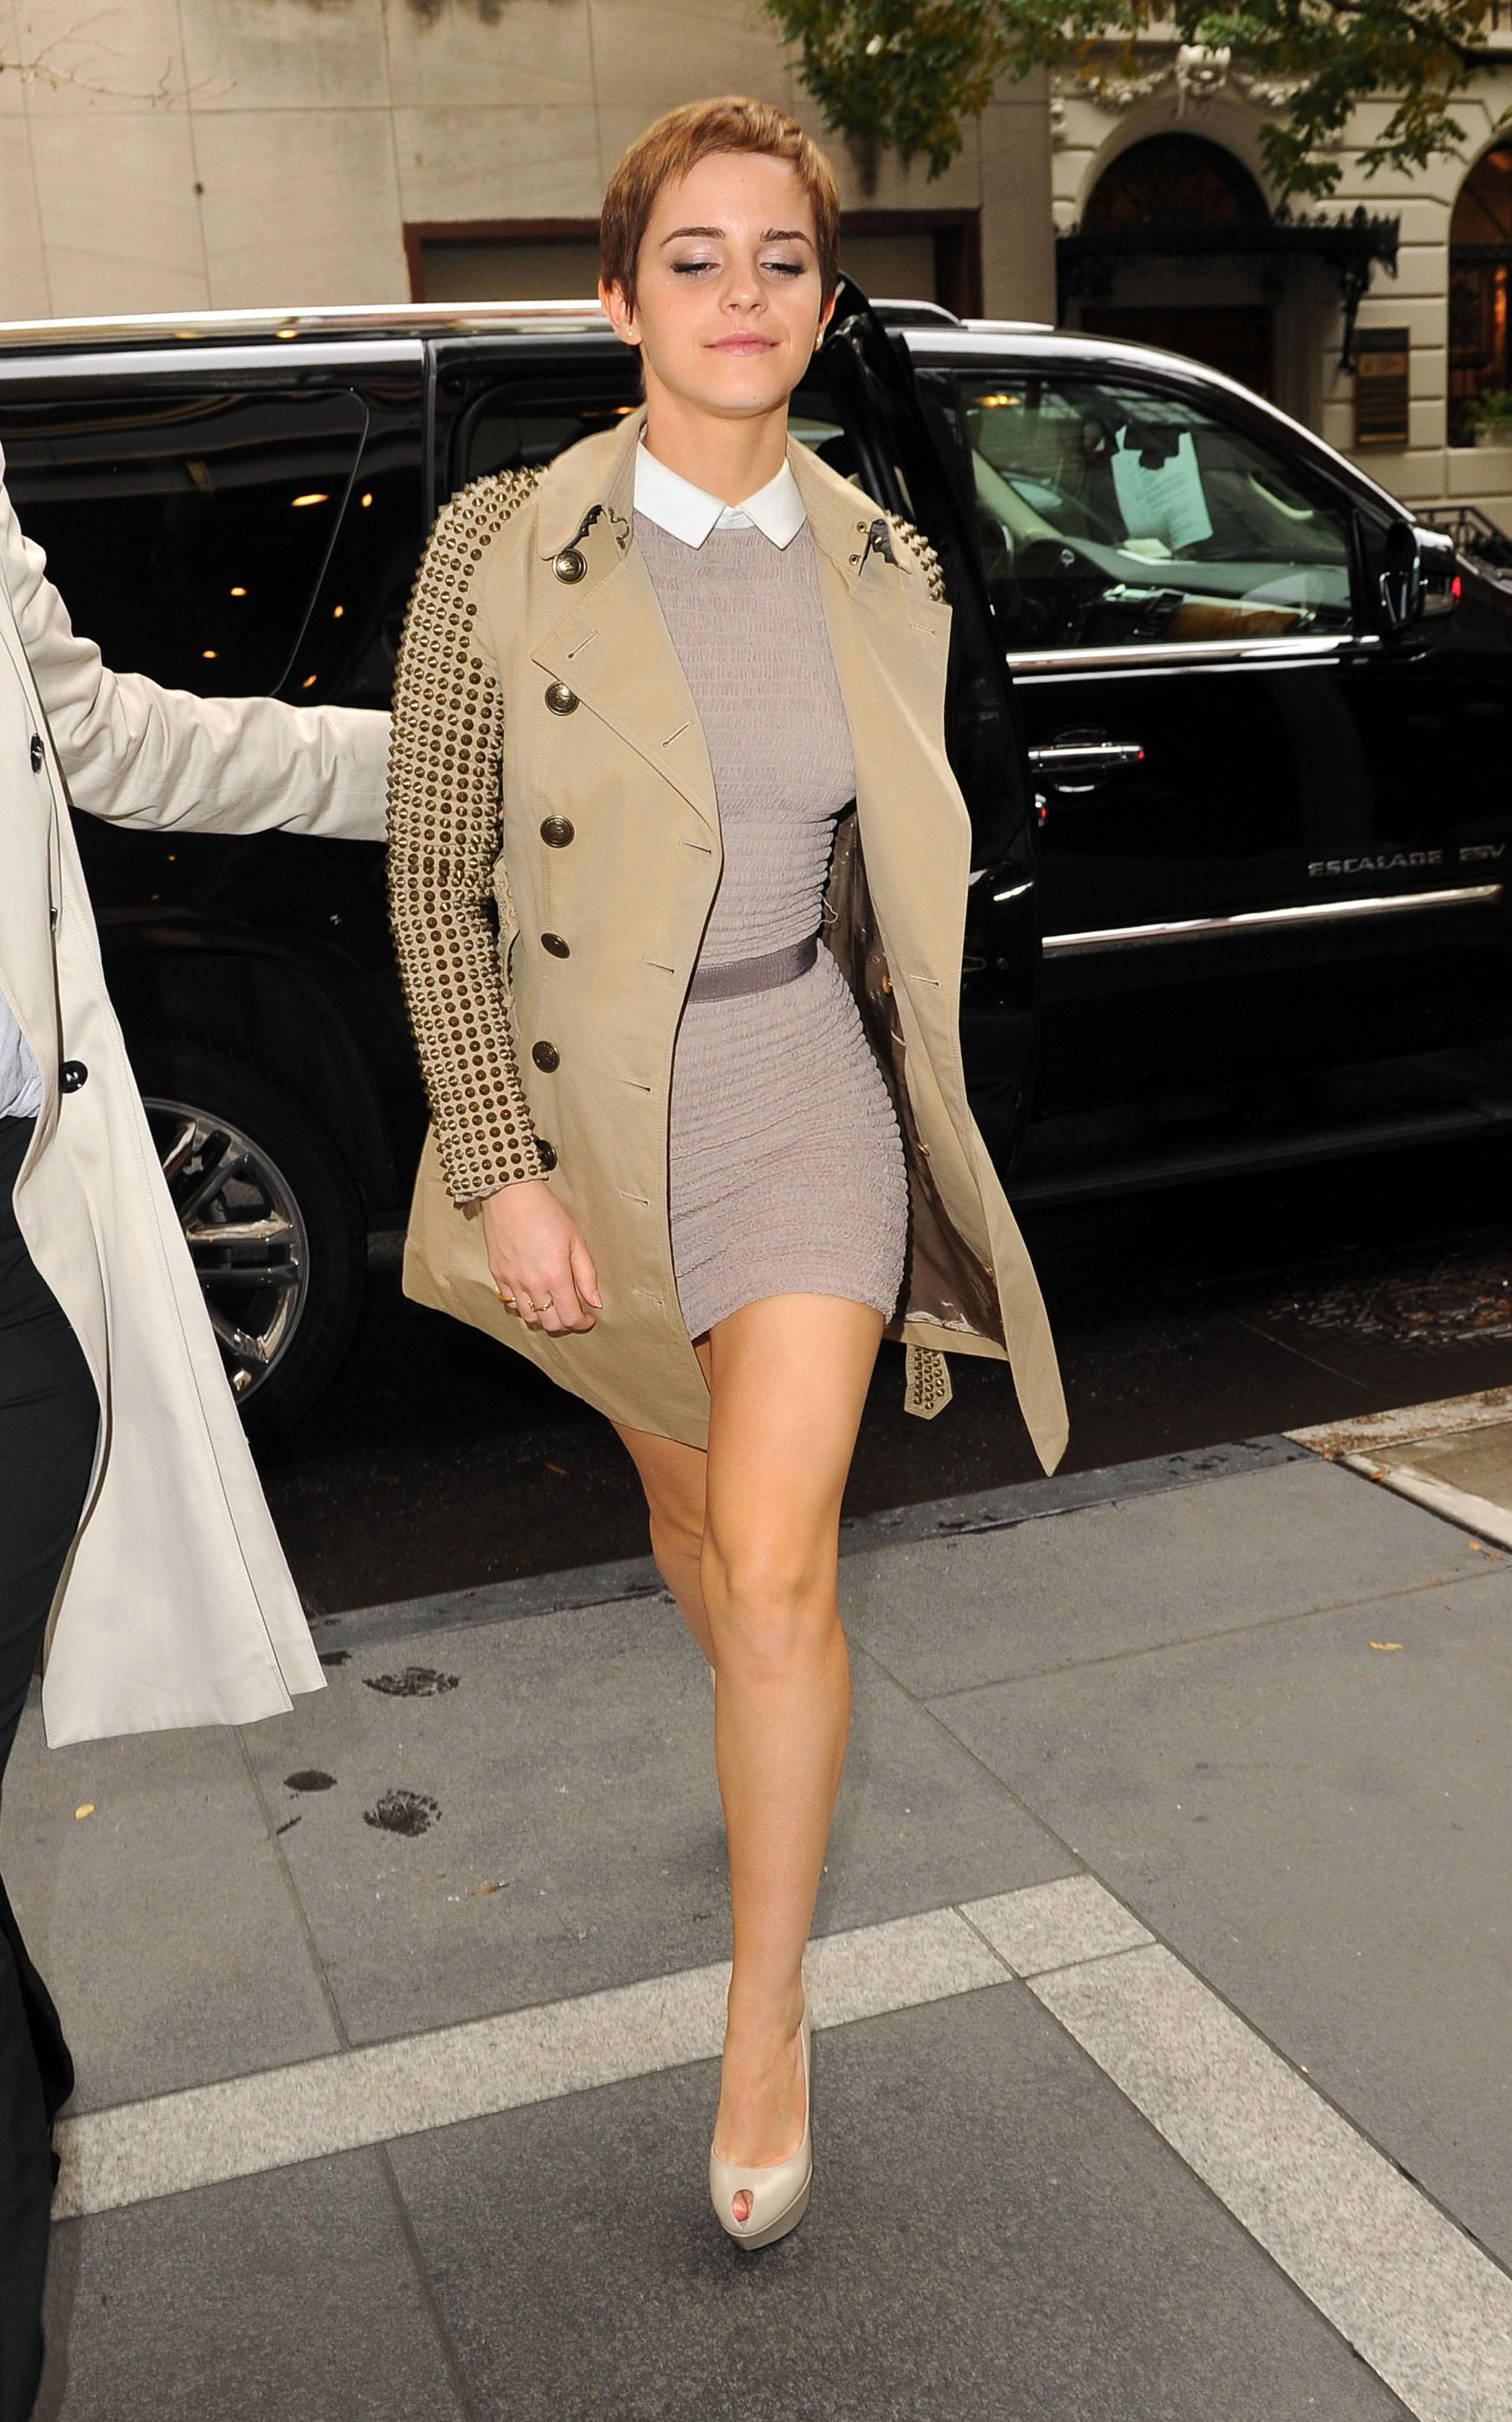 Emma Watson Beautiful In Short Hair And Beauty Burberry Dress